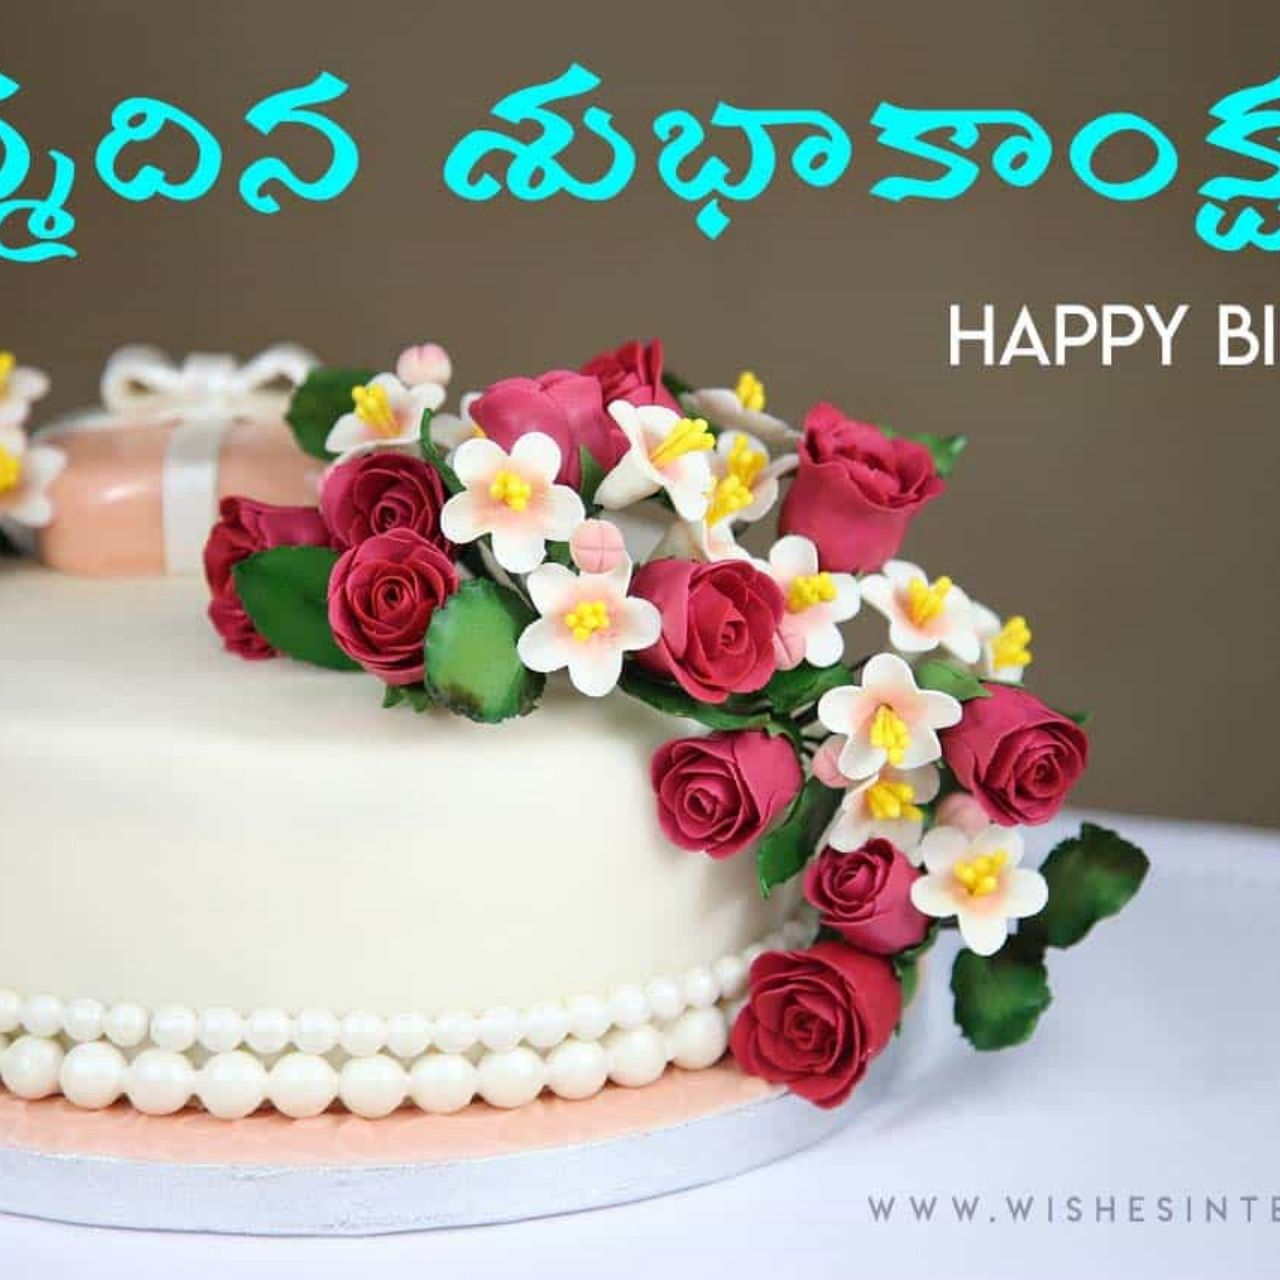 Happy Birthday Wishes In Telugu Images Free Download Hd Happy